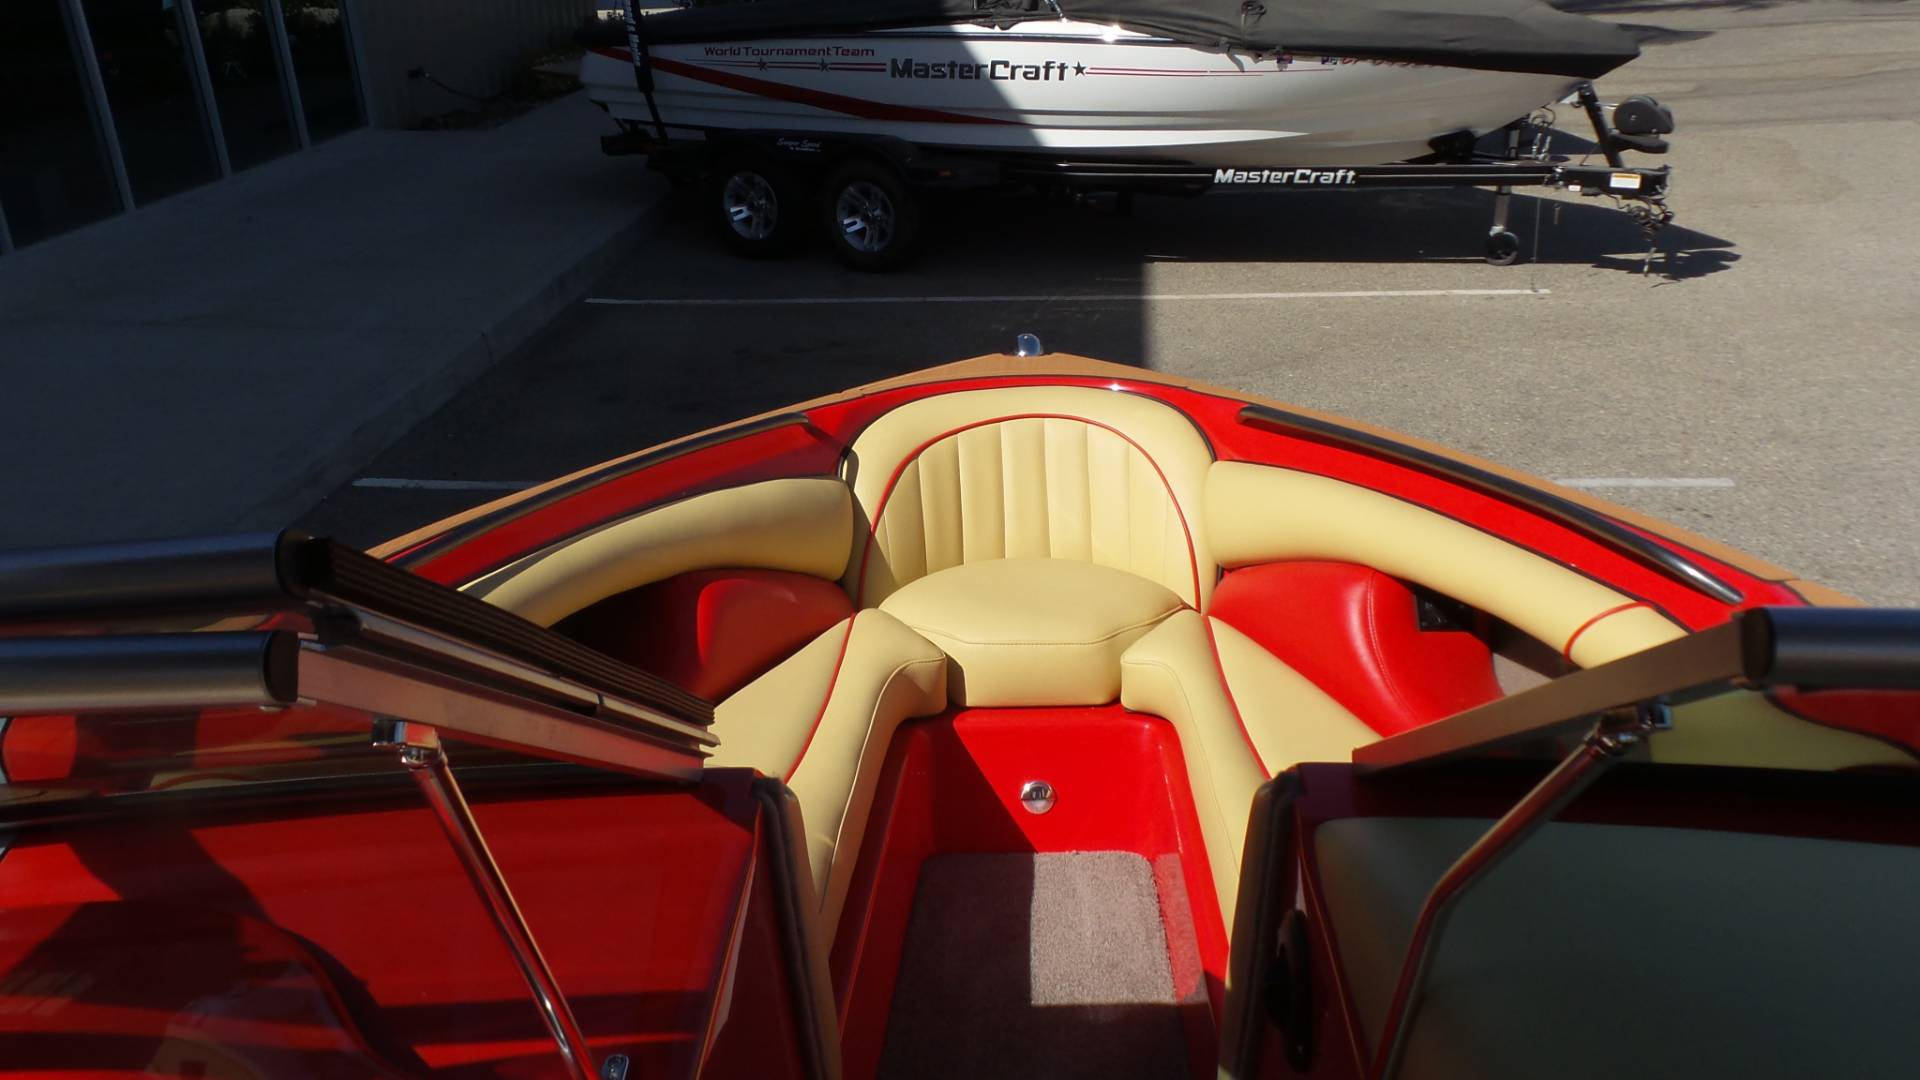 2019 Sanger Boats V-215 SX in Madera, California - Photo 11